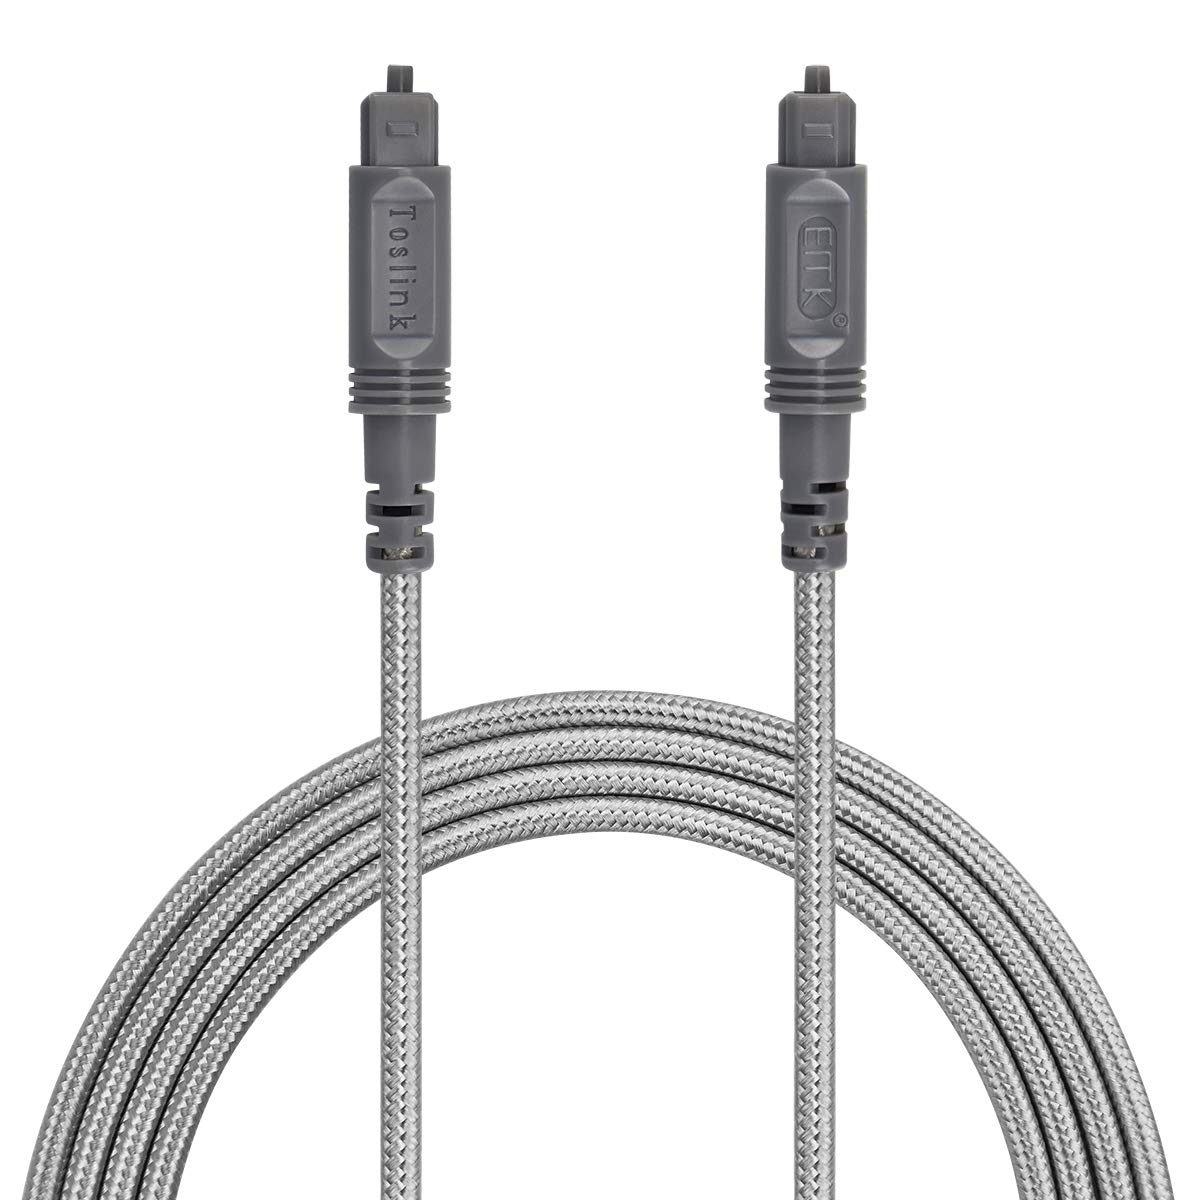 Optical Audio Cable Digital Toslink Cable 10ft - [ Ultra-Durable Nylon Braided Jacket ] Slim Flexible and Durable Fiber Optic Cord for Home Theater, Sound bar, TV, PS4, Xbox and More